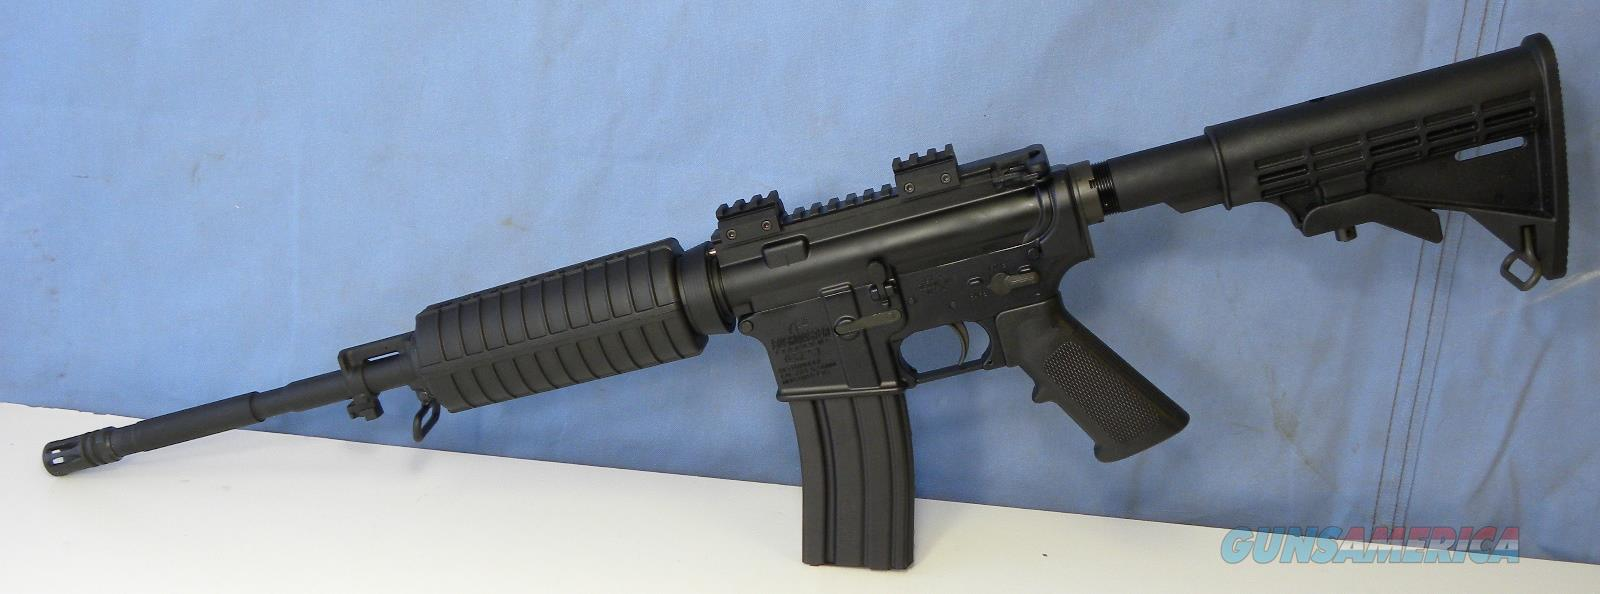 Bushmaster XM15 Optics Ready Carbine   Guns > Rifles > Bushmaster Rifles > Complete Rifles